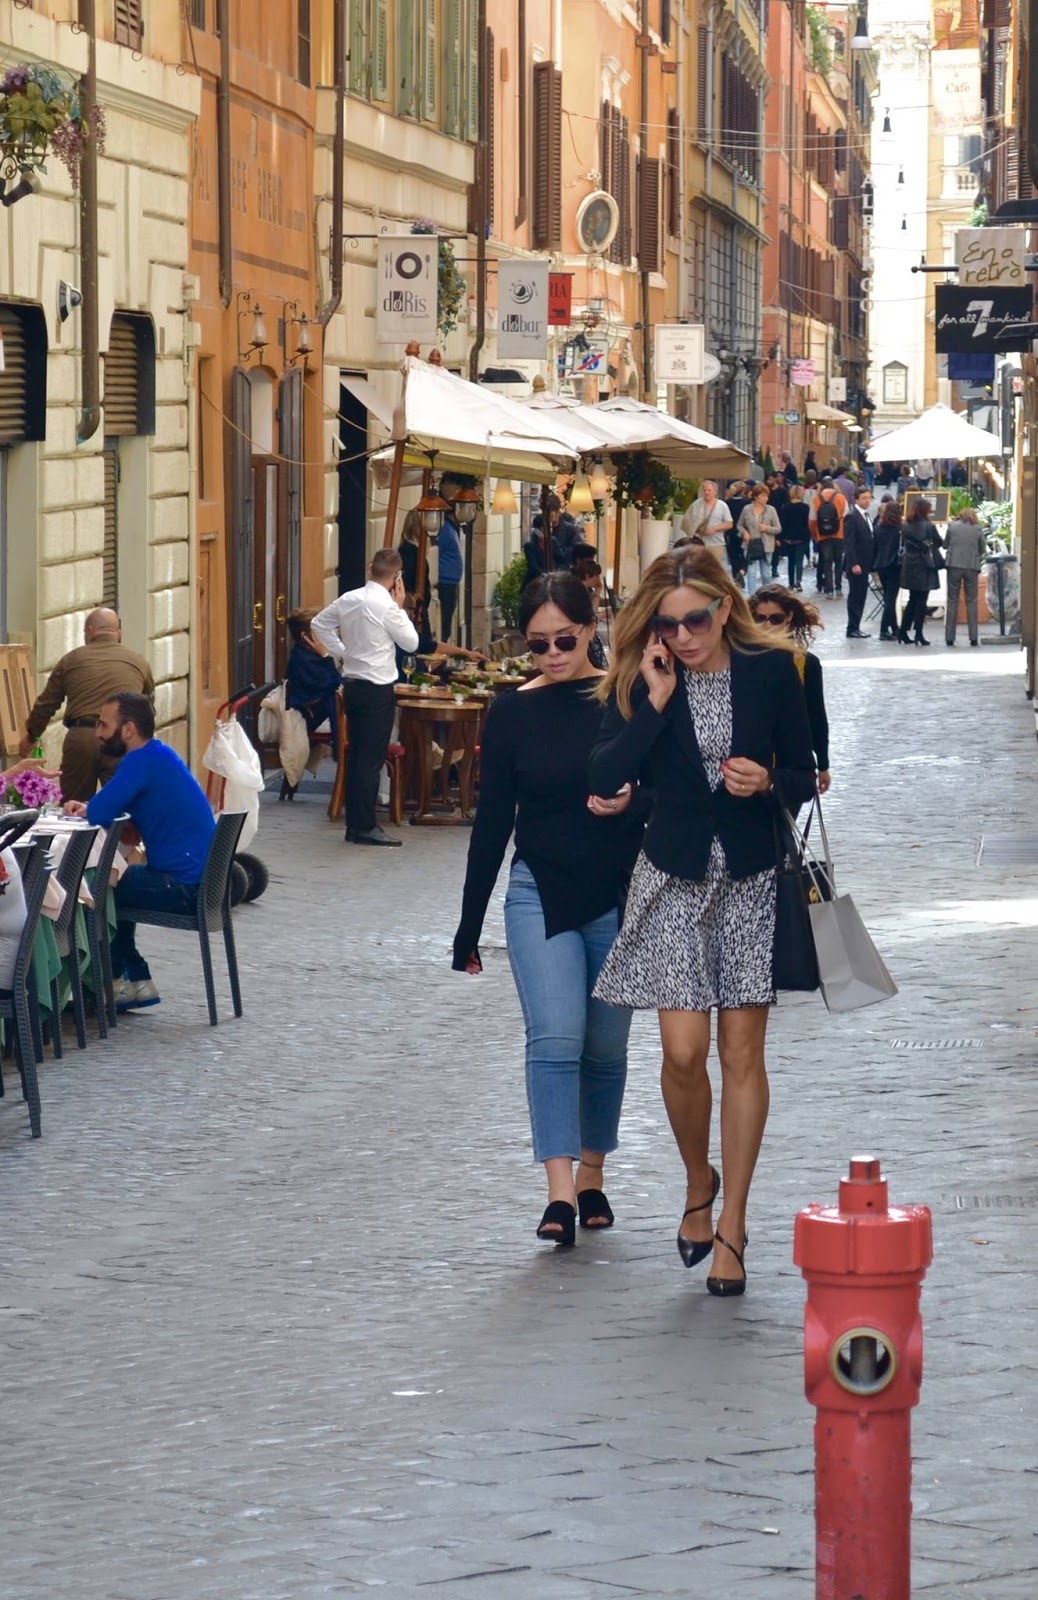 Personal Shopper And Fashion Consultant Roma Fashion On The Street